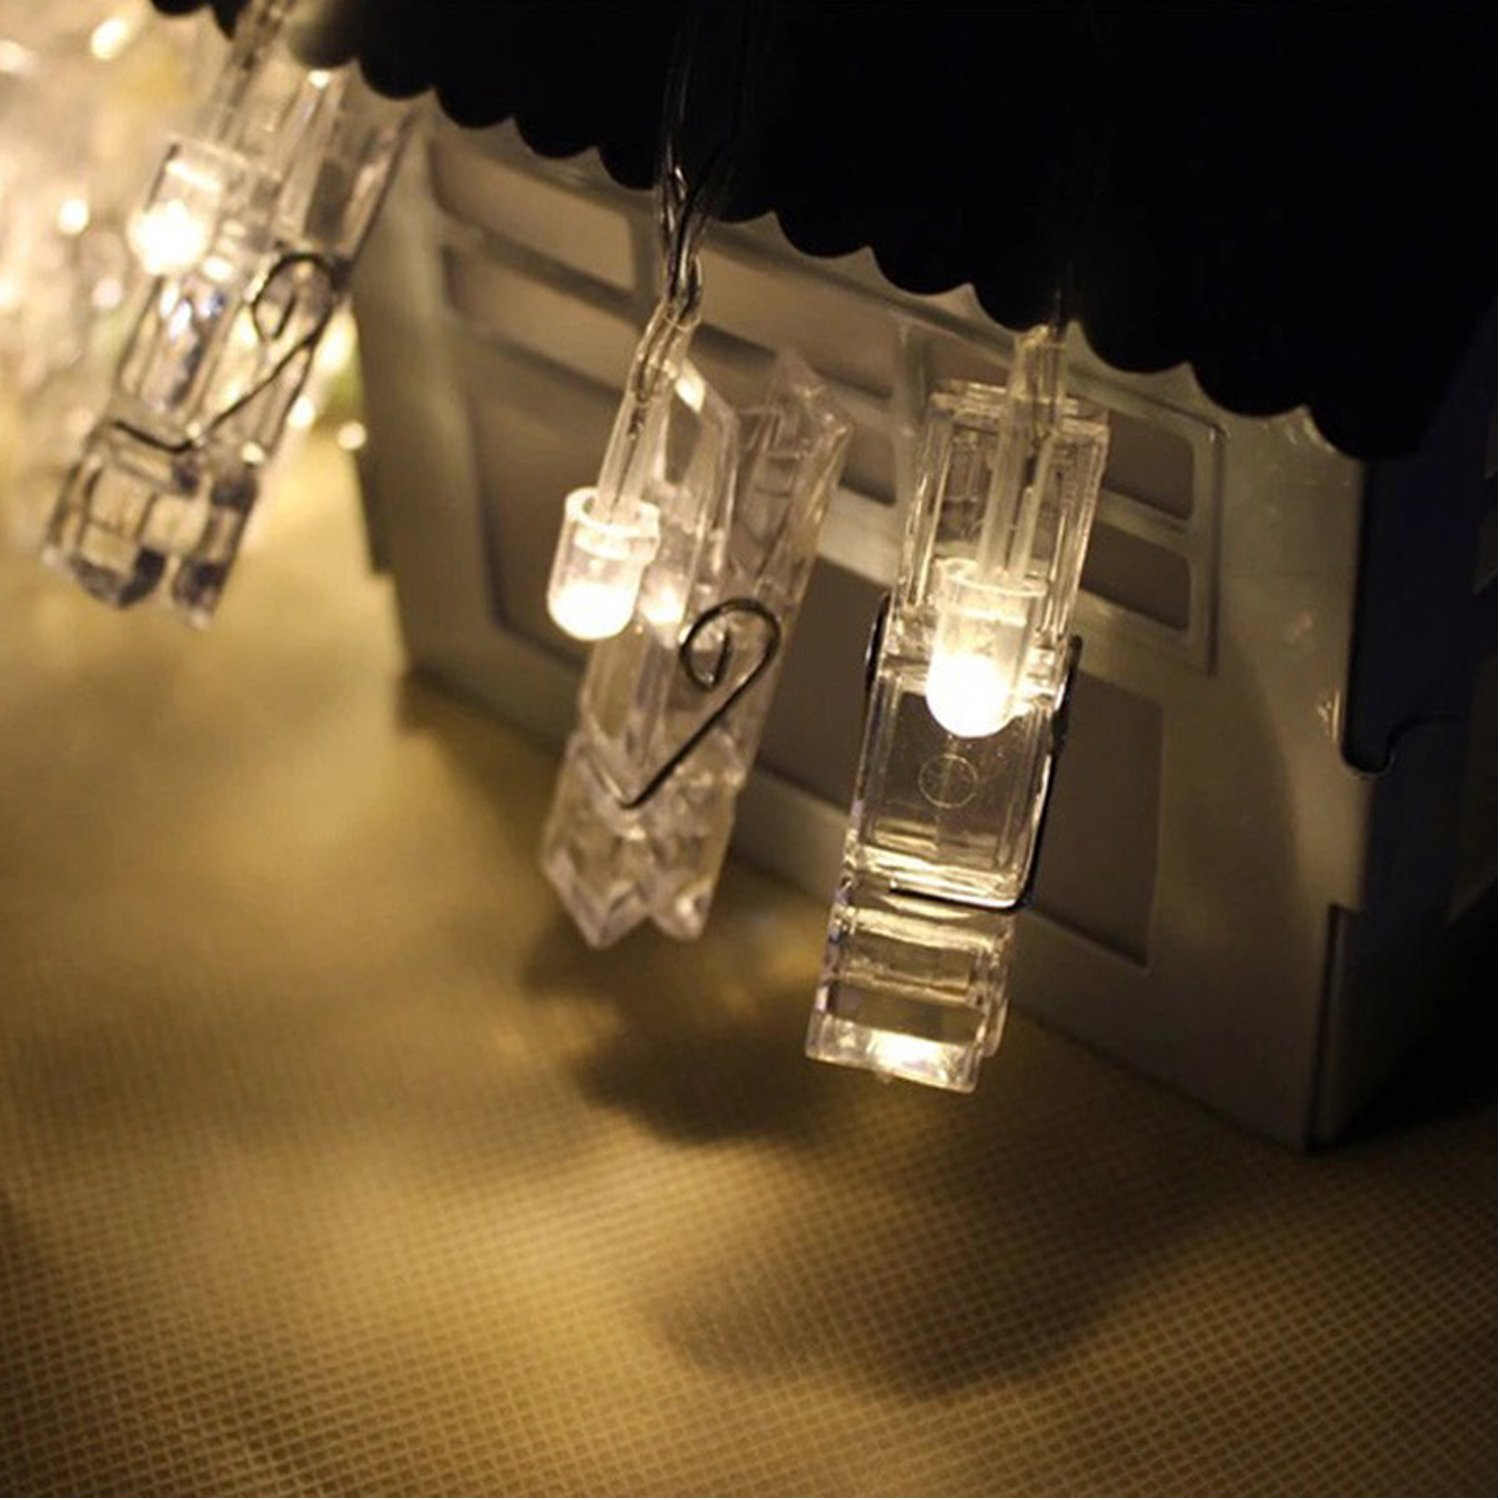 B1ST LED Photo Clip String Lights 16.4ft 5M 50 Clips Lights Battery Powered Rope Lighting Wedding Party Christmas Home Decor strand Light for Pictures Notes Artwork LED Decor (5 M Warm White) by B1ST (Image #2)